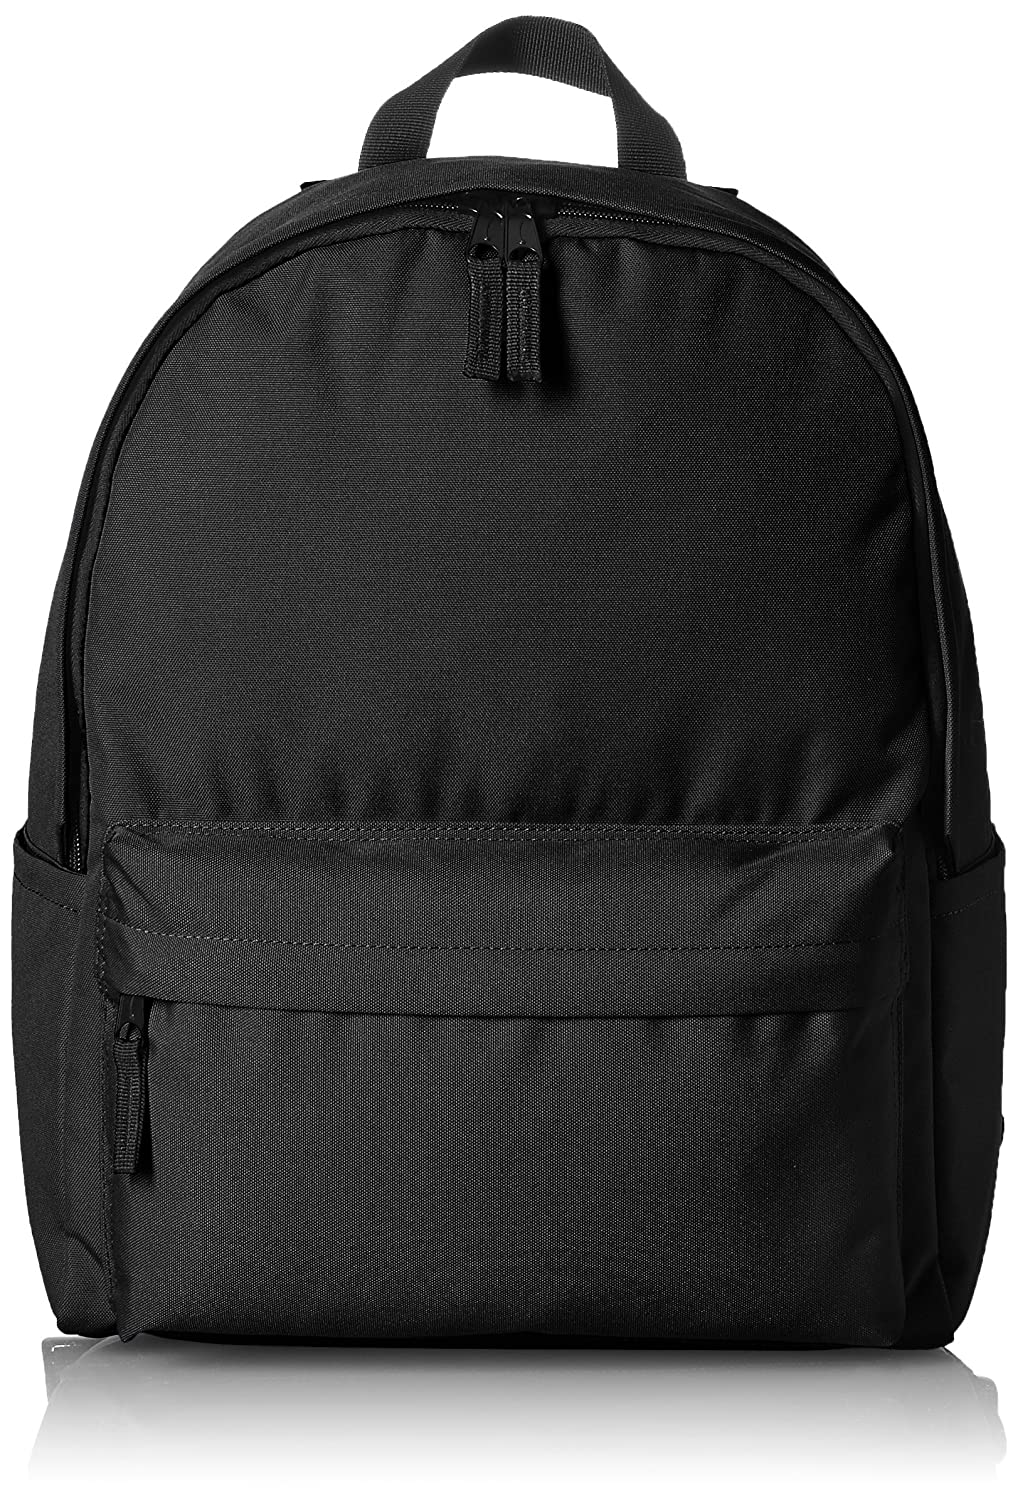 c543930fdbd 9 Best Backpacks For High School & College of 2019 | ReviewLab